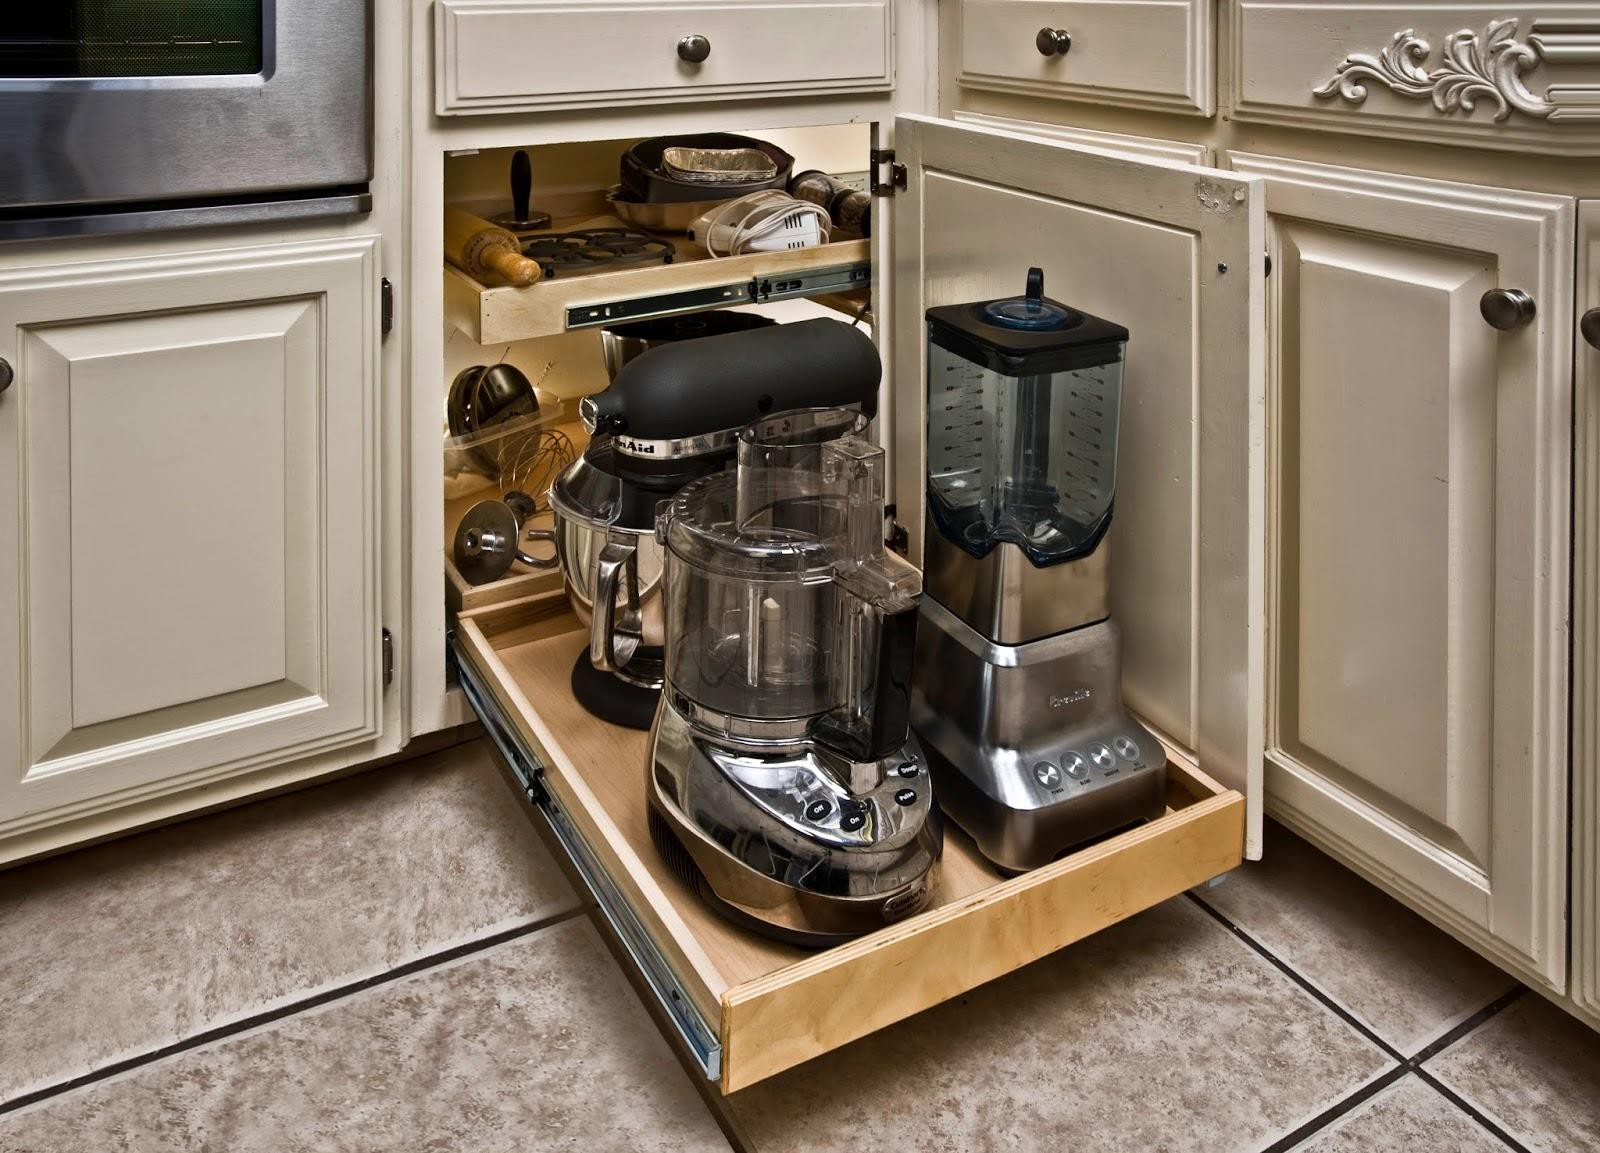 9. Pull Out Cabinet Kitchen Appliance Organiser